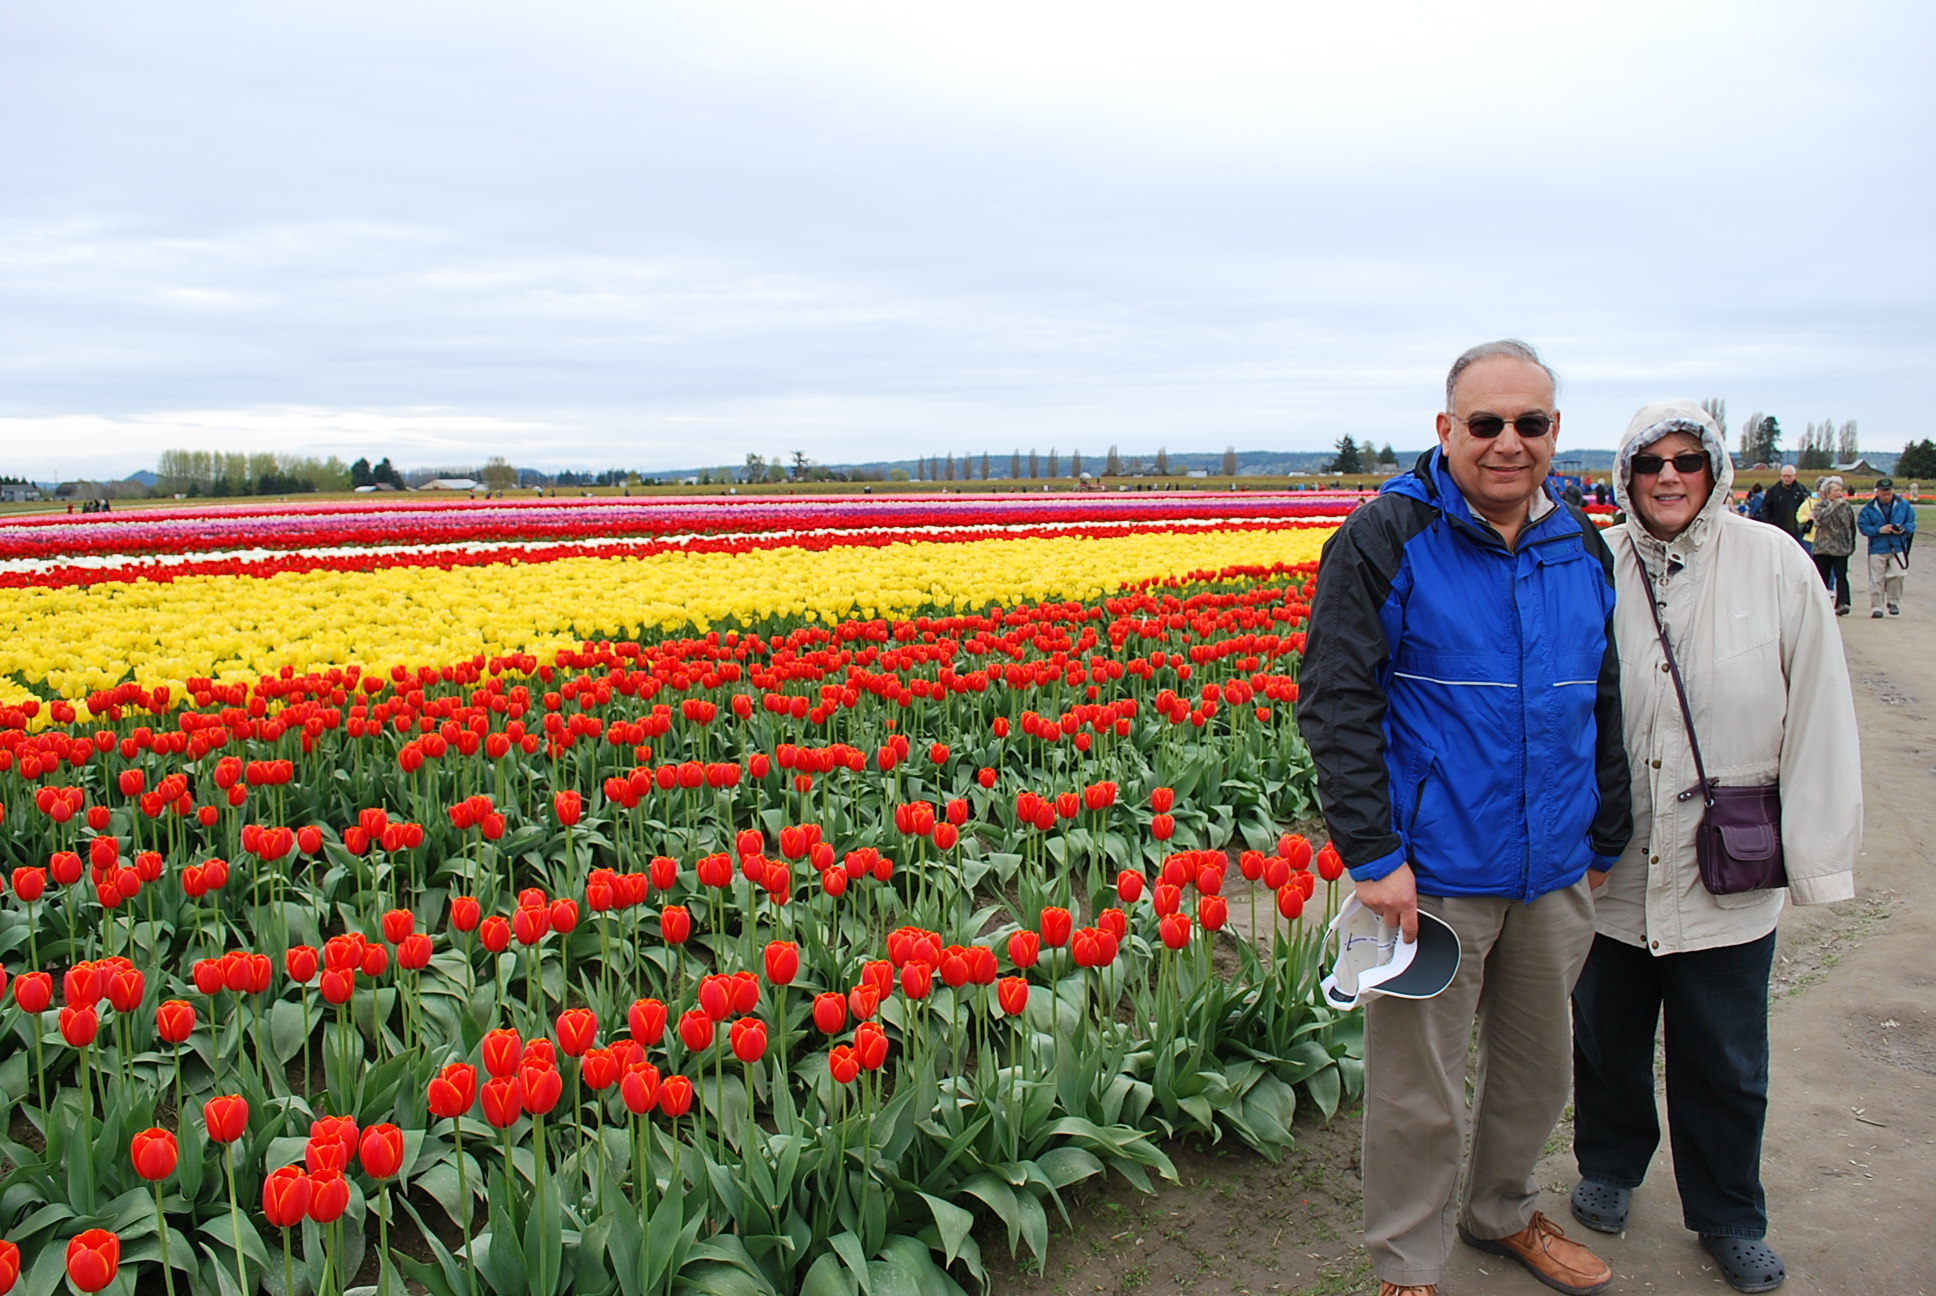 Tulips are Coming to the Skagit Valley